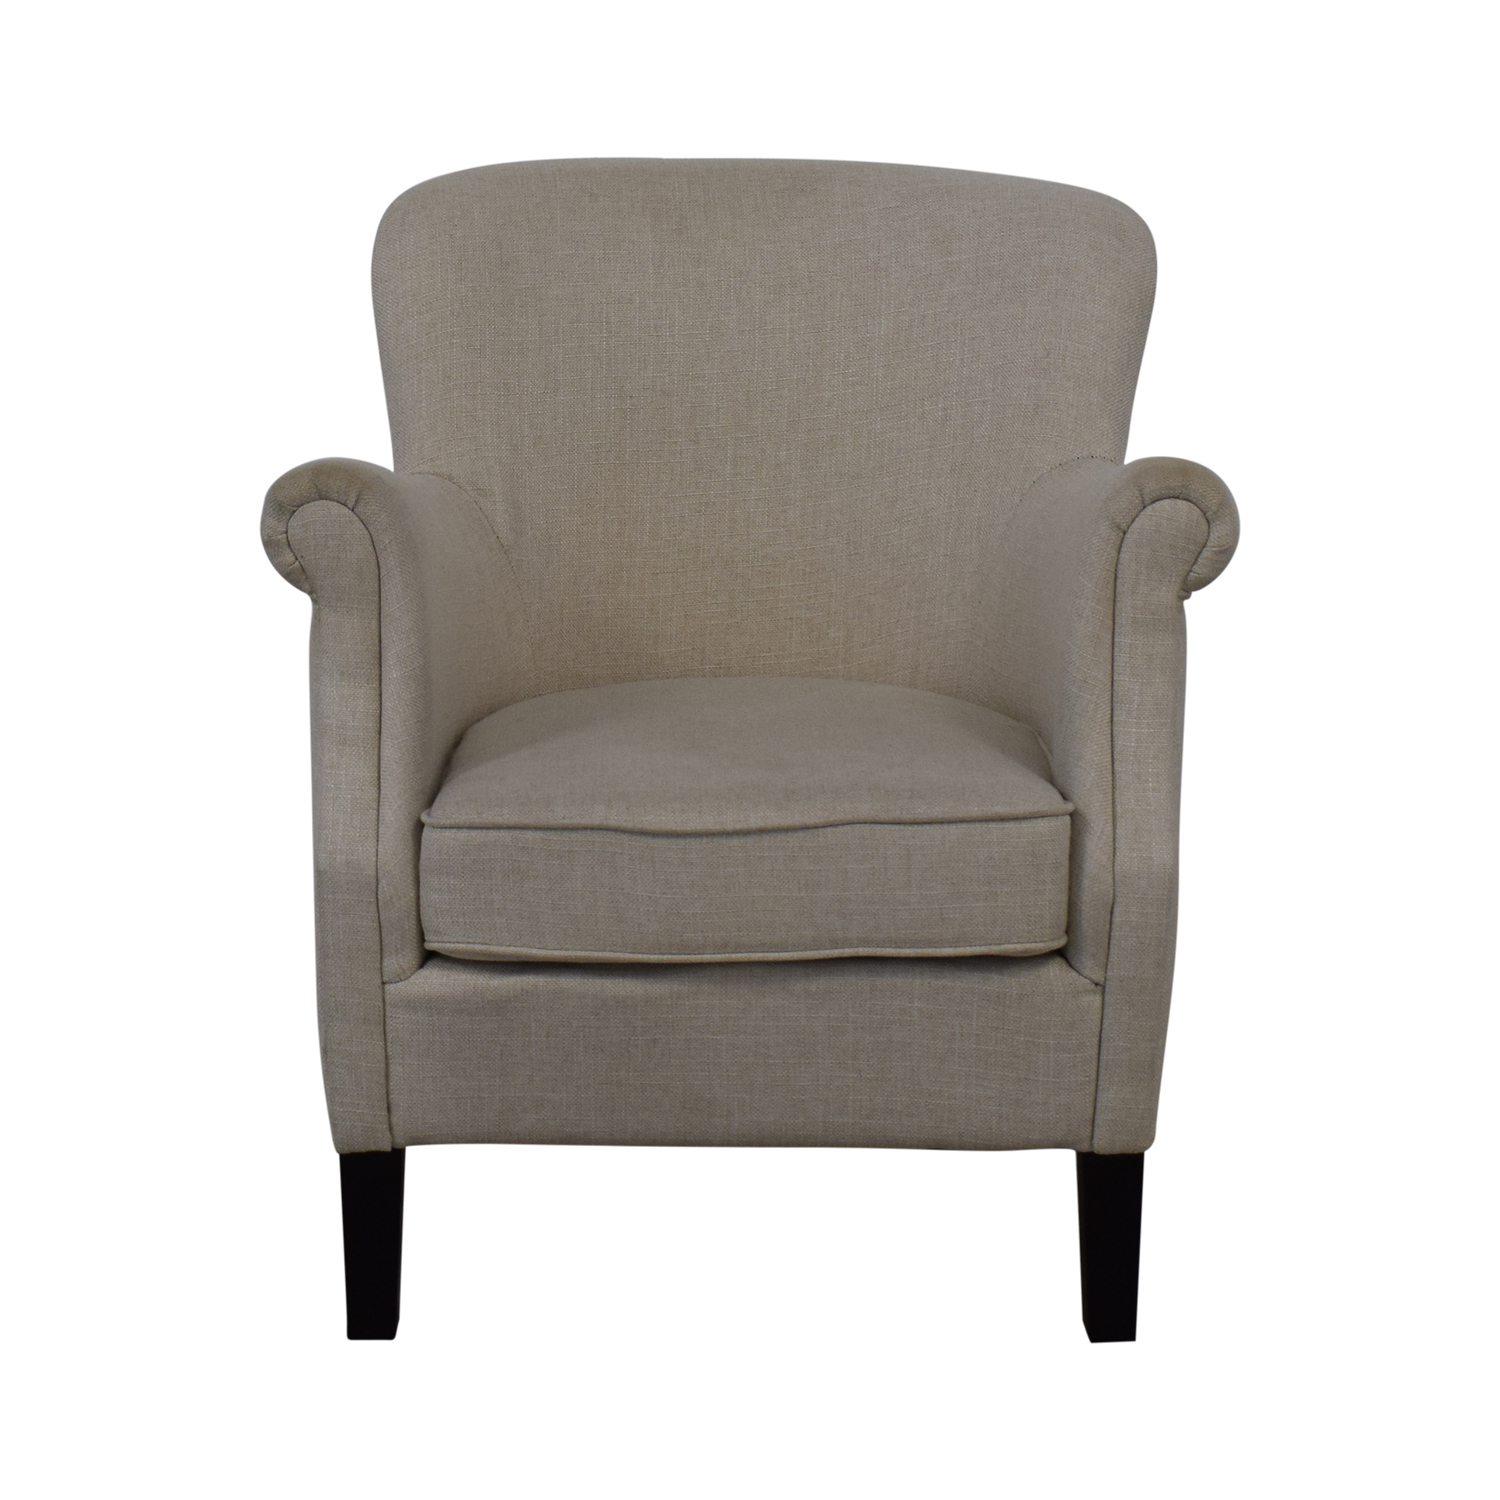 buy Pottery Barn Soma Minna Upholstered Armchair Pottery Barn Chairs